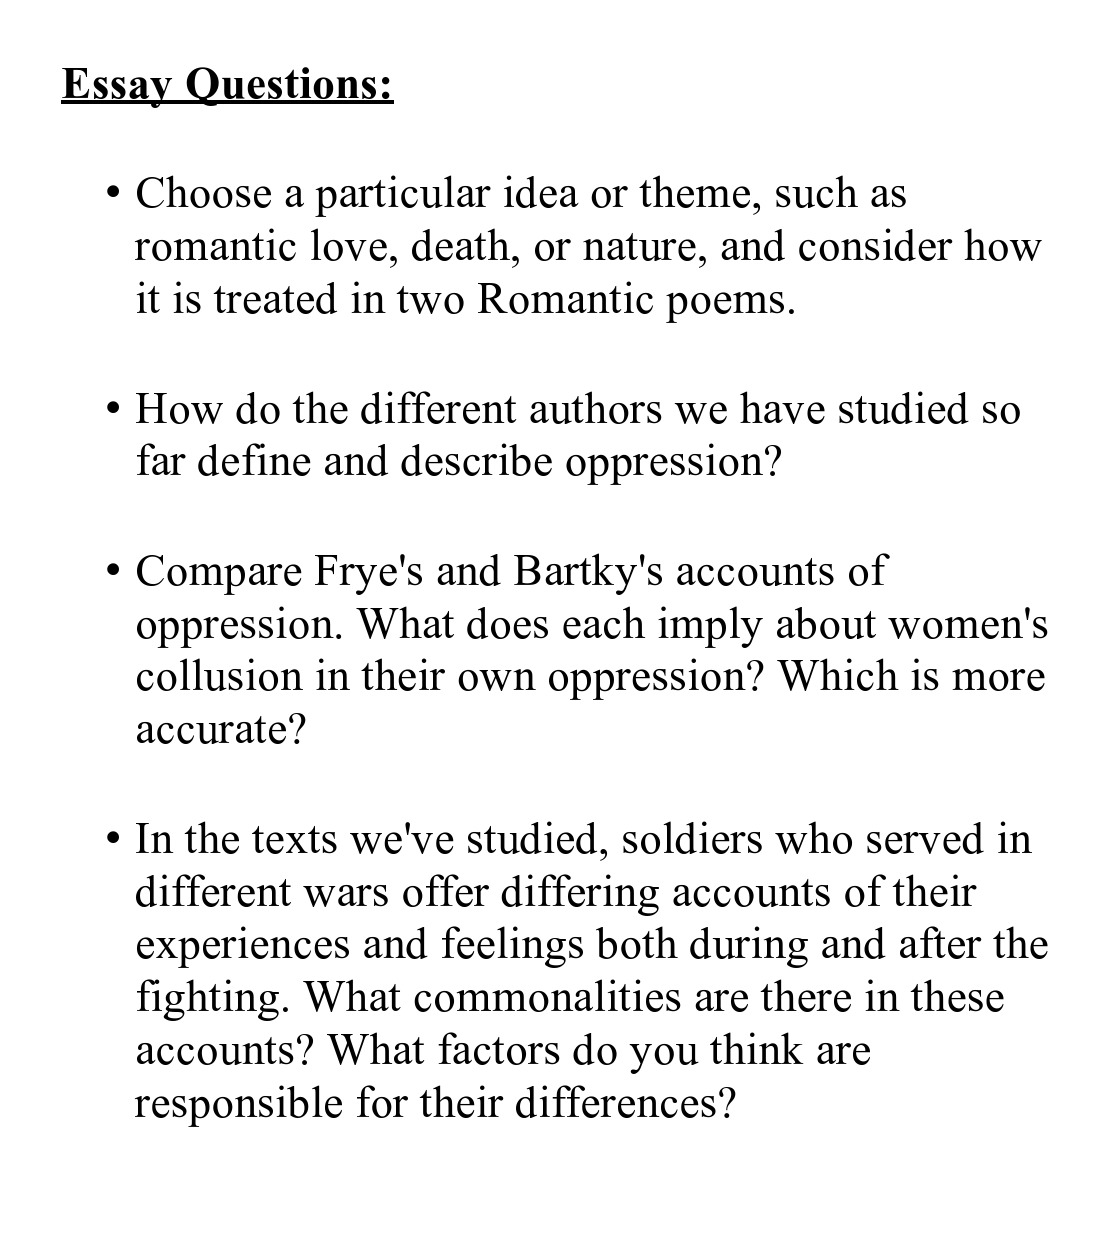 006 Essay Example Questions Topics To Write Stupendous About Best For School Paper Full